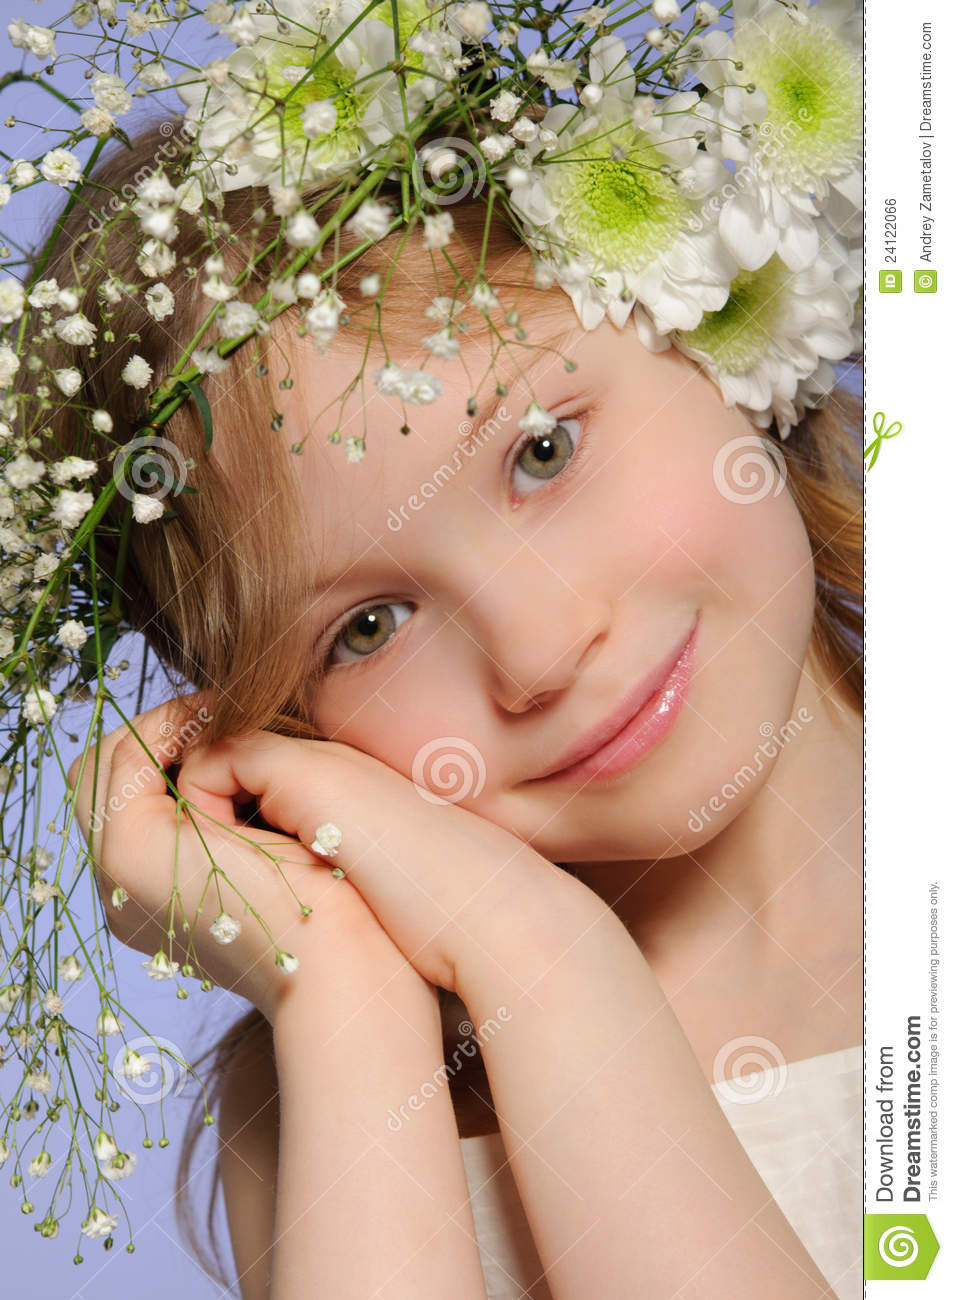 Vertical Portrait Of Pretty 14 Year Old Girl Stock Image: Vertical Portrait Of Pretty 14 Year Old Girl Royalty-Free